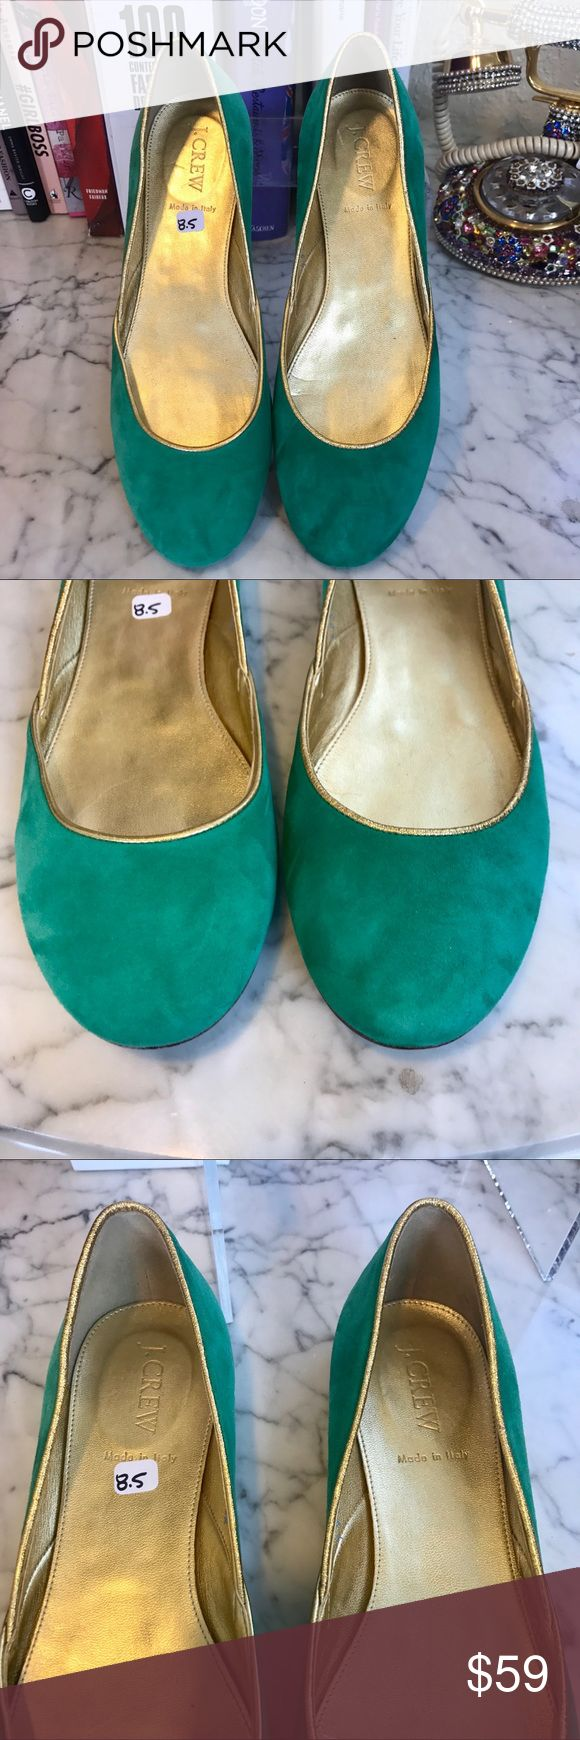 EUC - J. Crew - Green Suede Ballet Flats - SZ 8.5 Like new J.Crew ballet flats in green suede lined with gold trim. Leather soles, made in Italy. No damage or visible signs of wear. These are from the real J. crew store, not the outlet. J. Crew Shoes Flats & Loafers